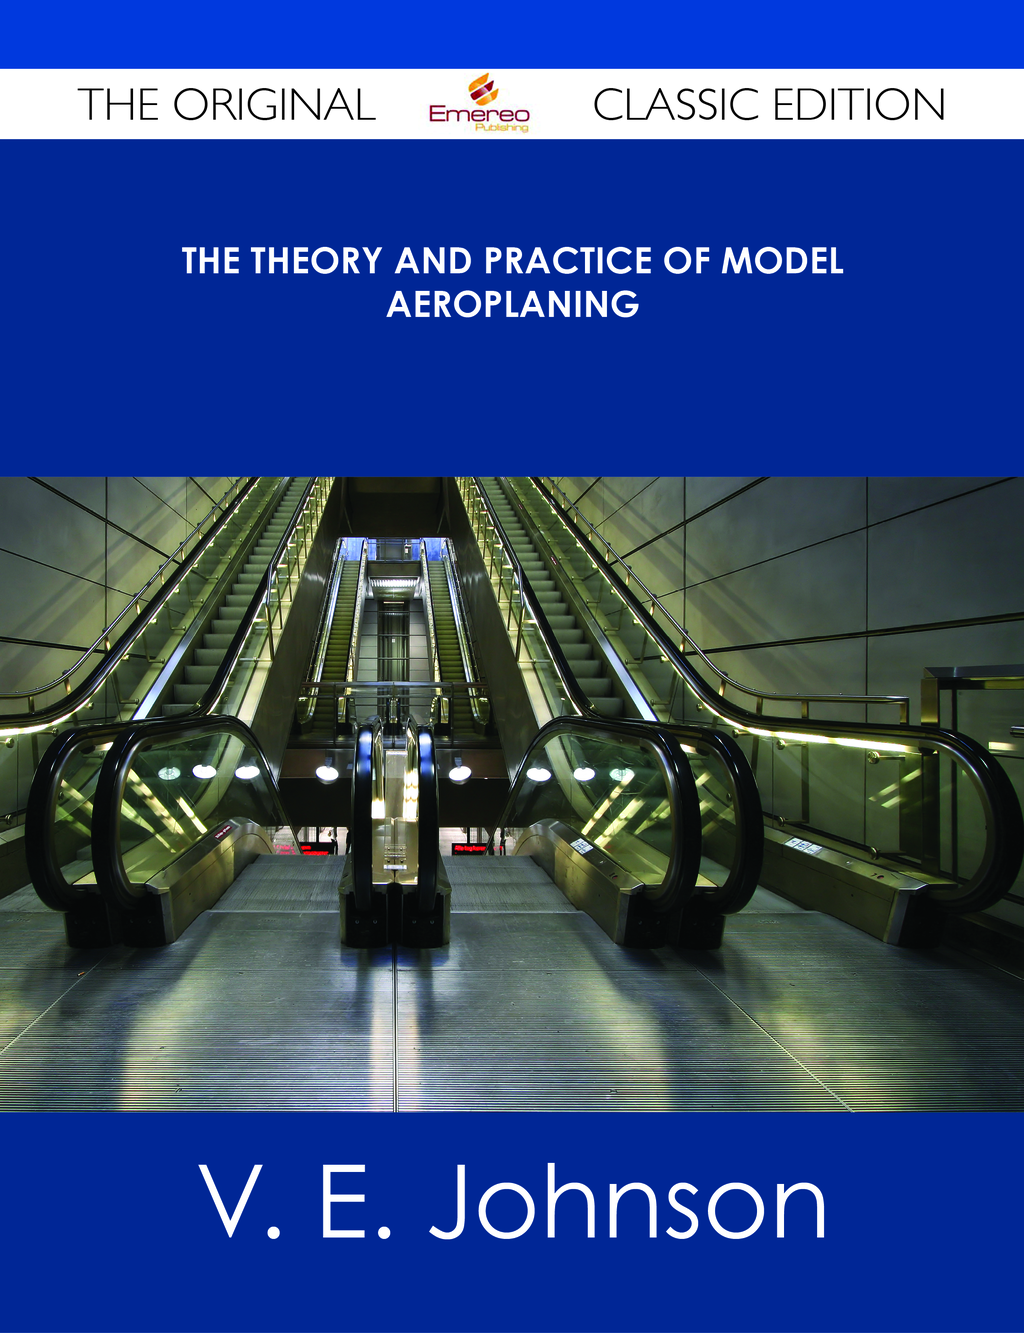 The Theory and Practice of Model Aeroplaning - The Original Classic Edition